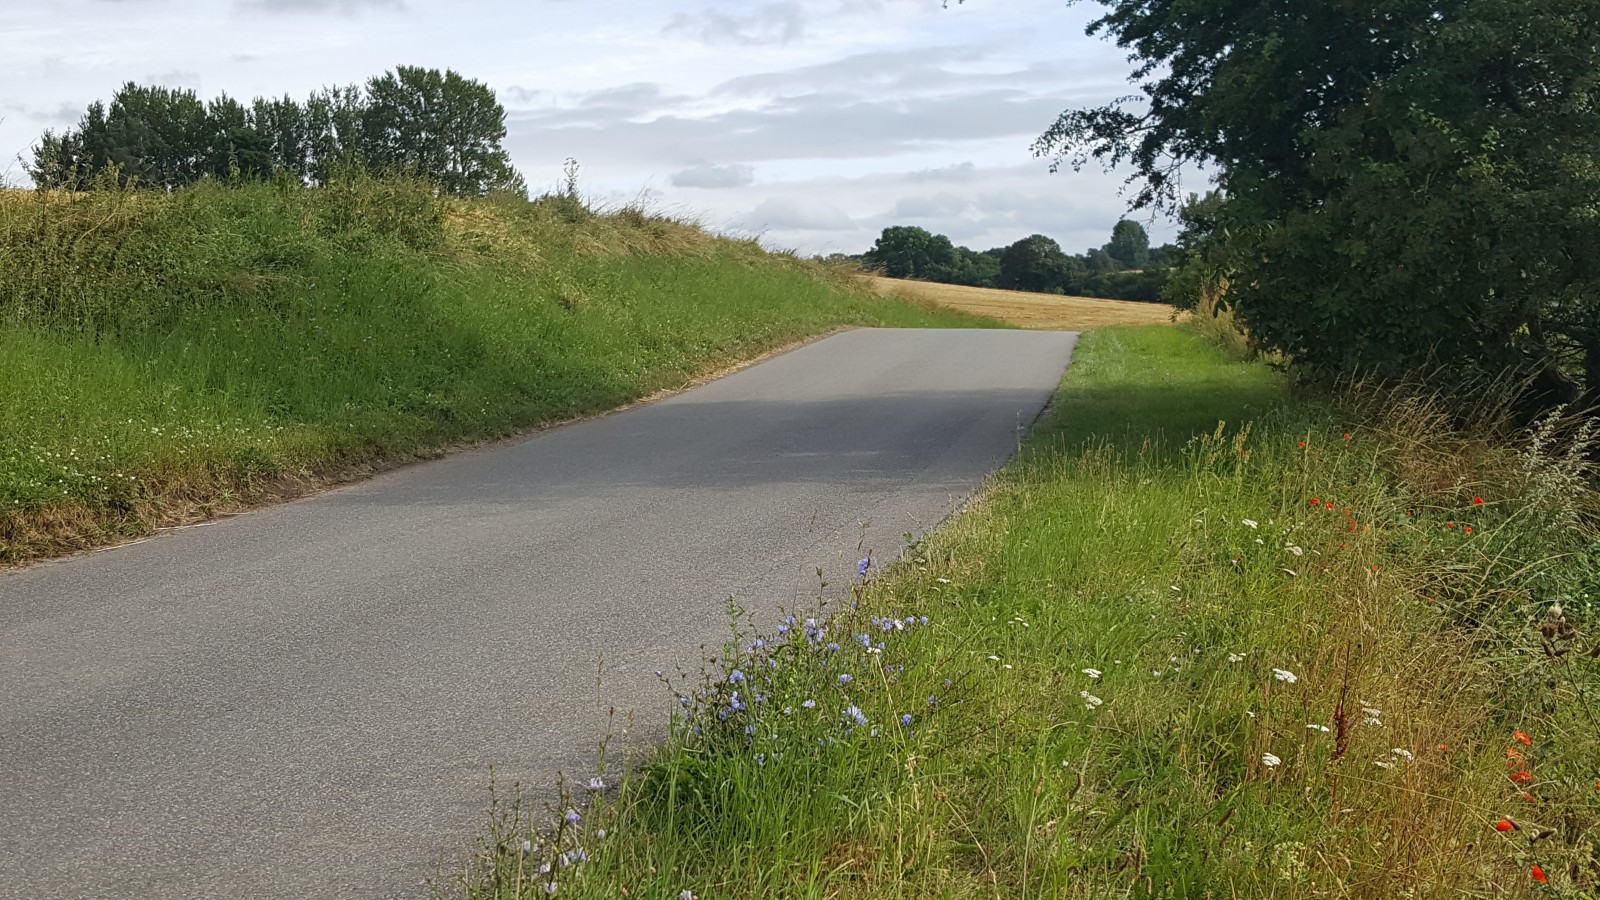 The long and not so windy road to the pub! Wildflowers growing alongside a beautiful country lane in Denmark